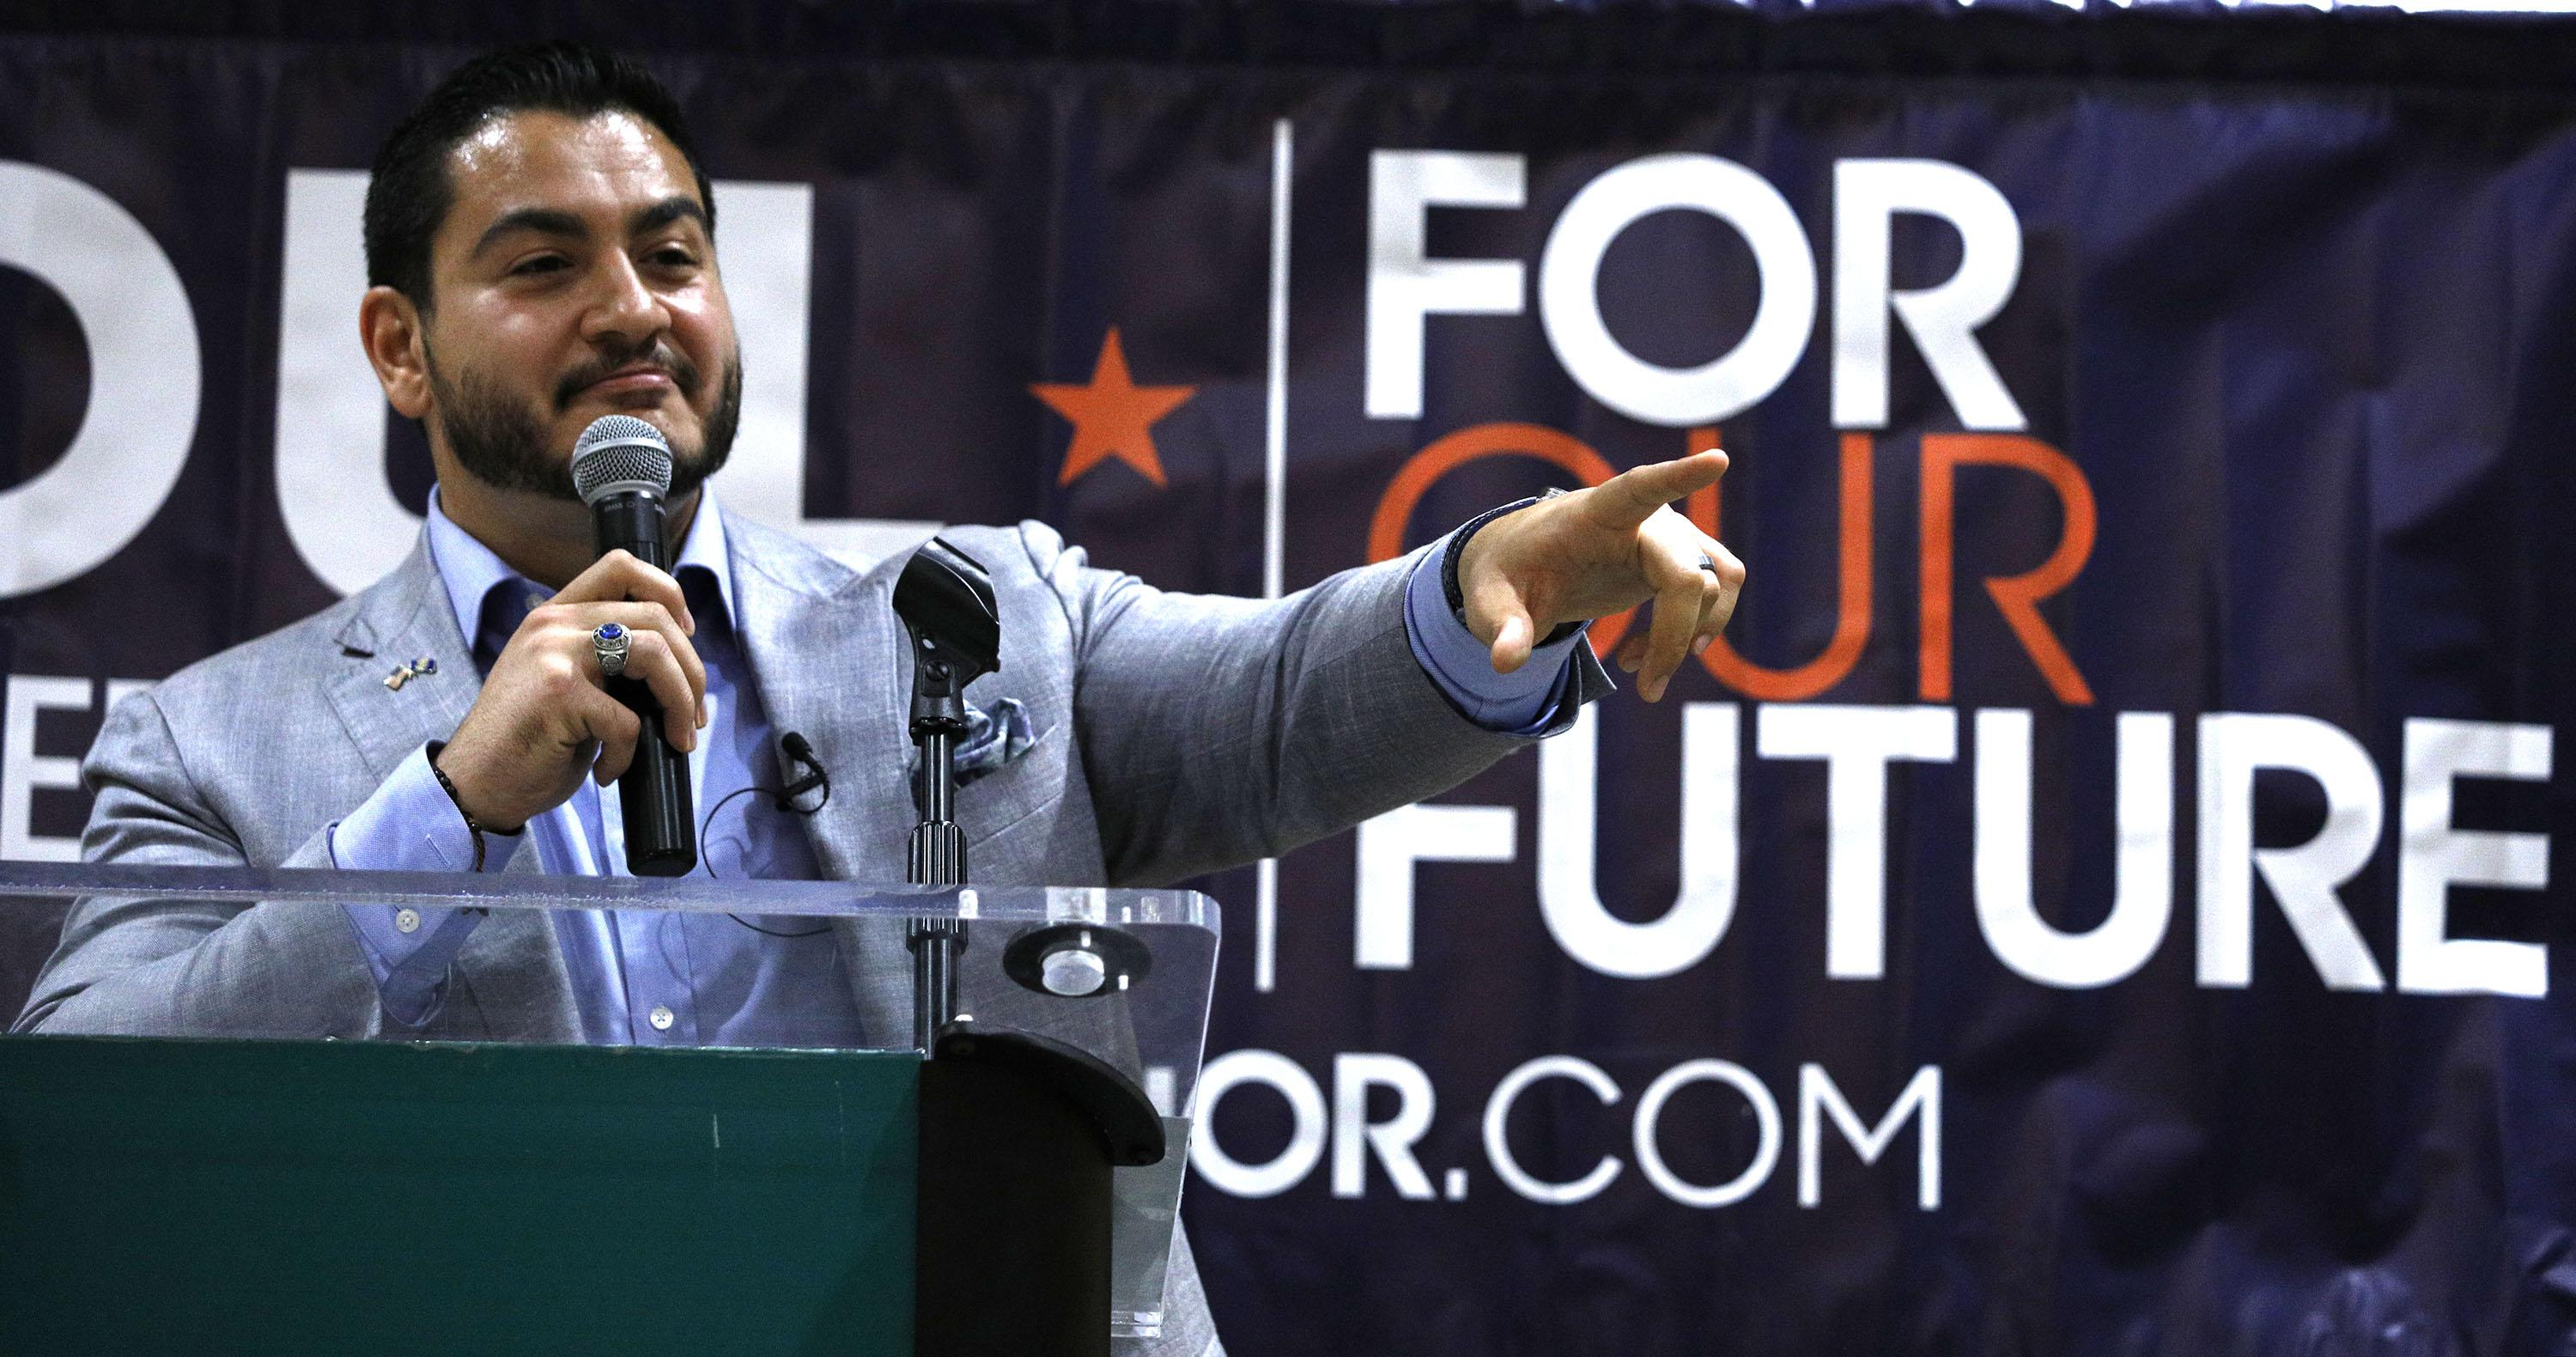 Michigan Democratic gubernatorial candidate Abdul El-Sayed campaigns with support from New York Democrat candidate for Congress Alexandria Ocasio-Cortez at a rally on the campus of Wayne State University July 28, 2018 in Detroit, Michigan. (Photo by Bill Pugliano/Getty Images)